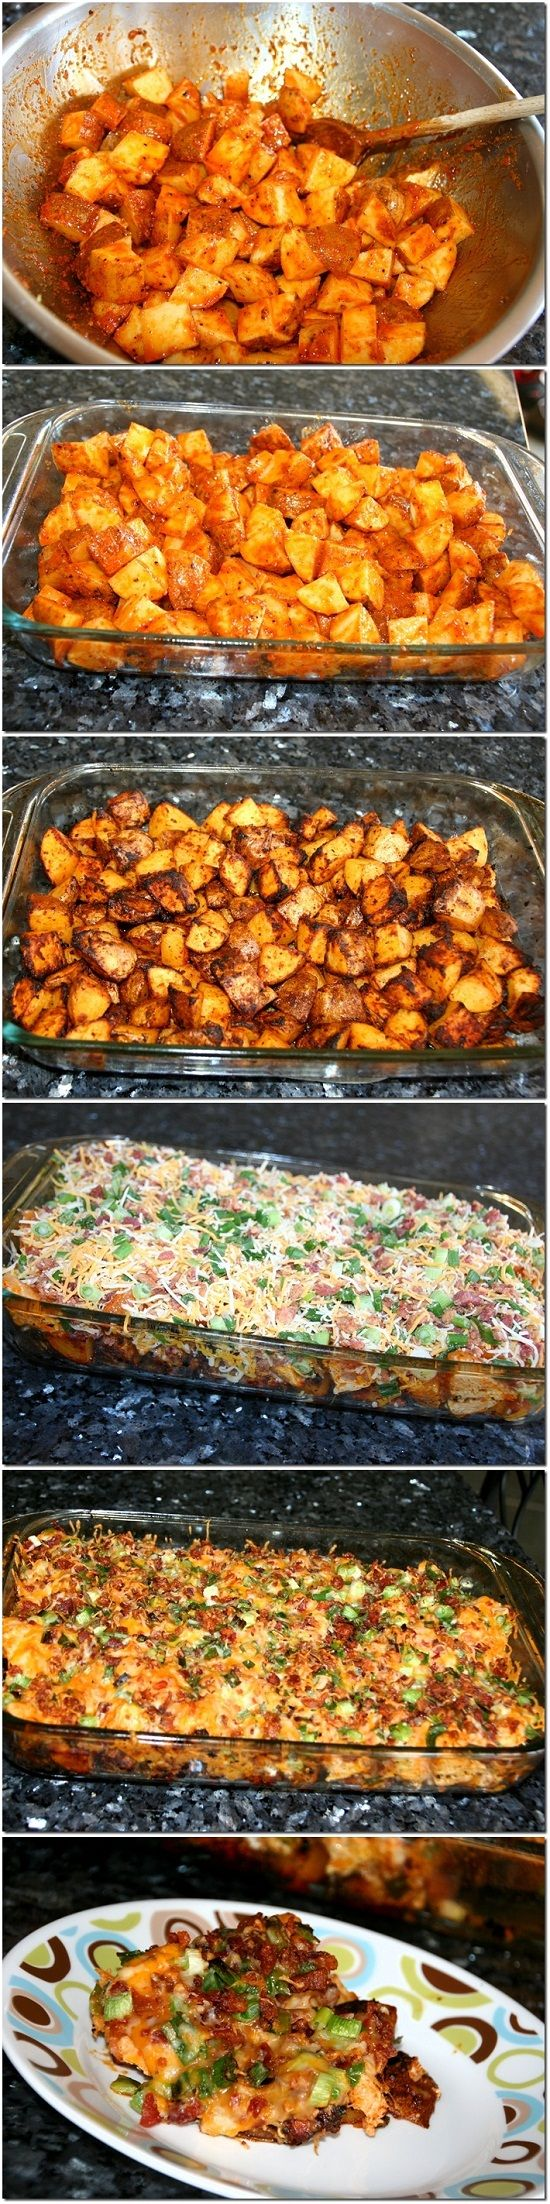 Loaded Potato And Buffalo Chicken Casserole